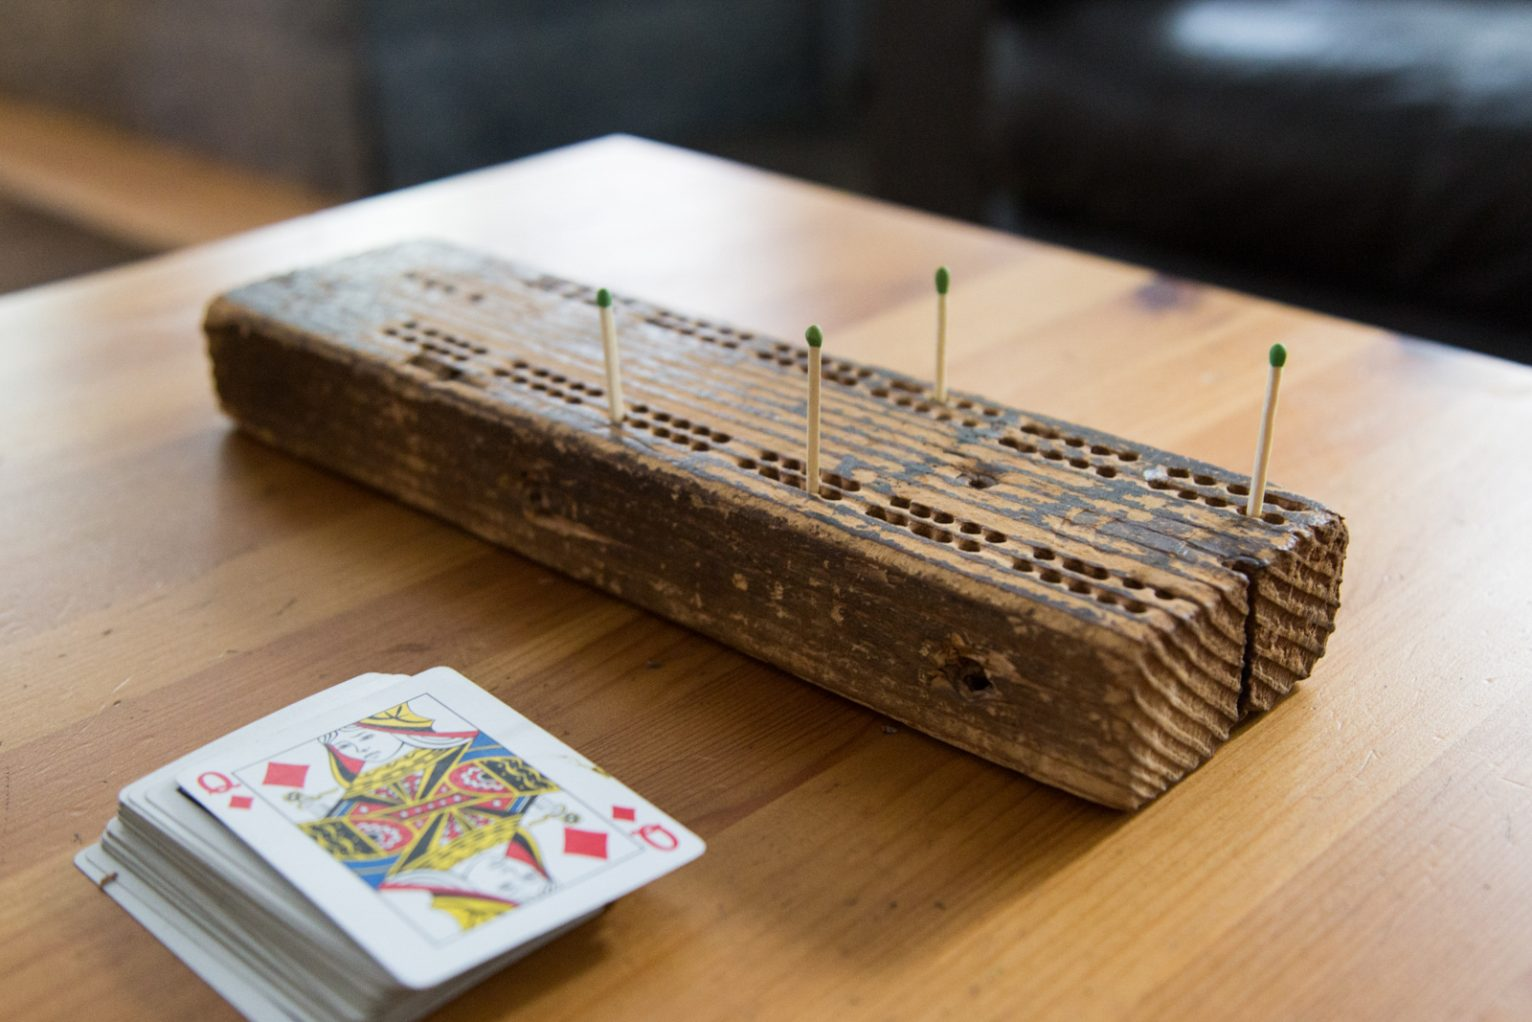 A picture a Cribbage game